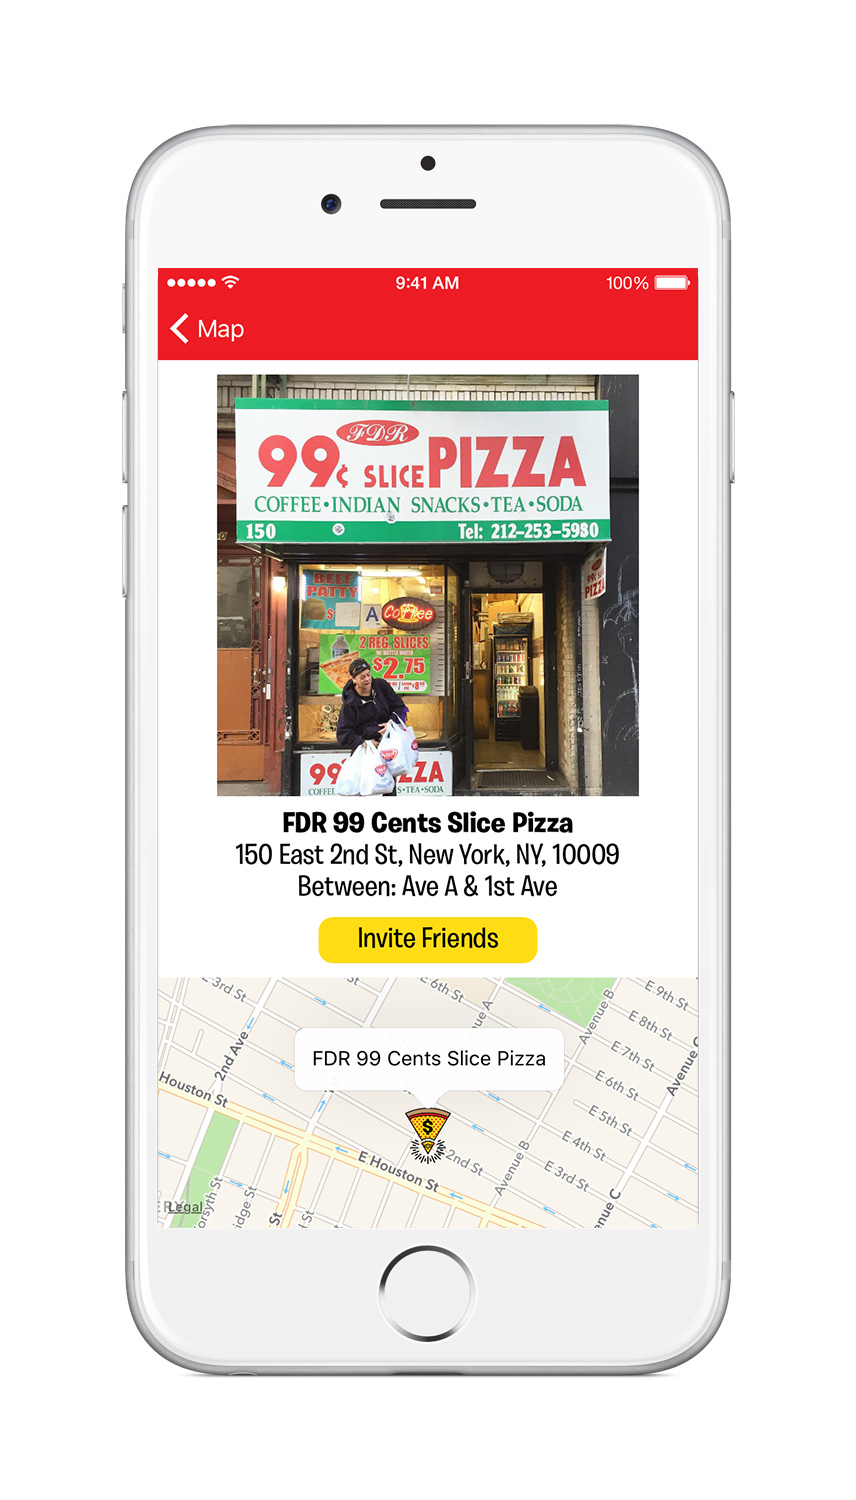 Dollar Slice NYC, Pizza, Map, App, New York City, iTunes, Google Maps, Matthew Wolff, Design, $1, 99 cent pizza